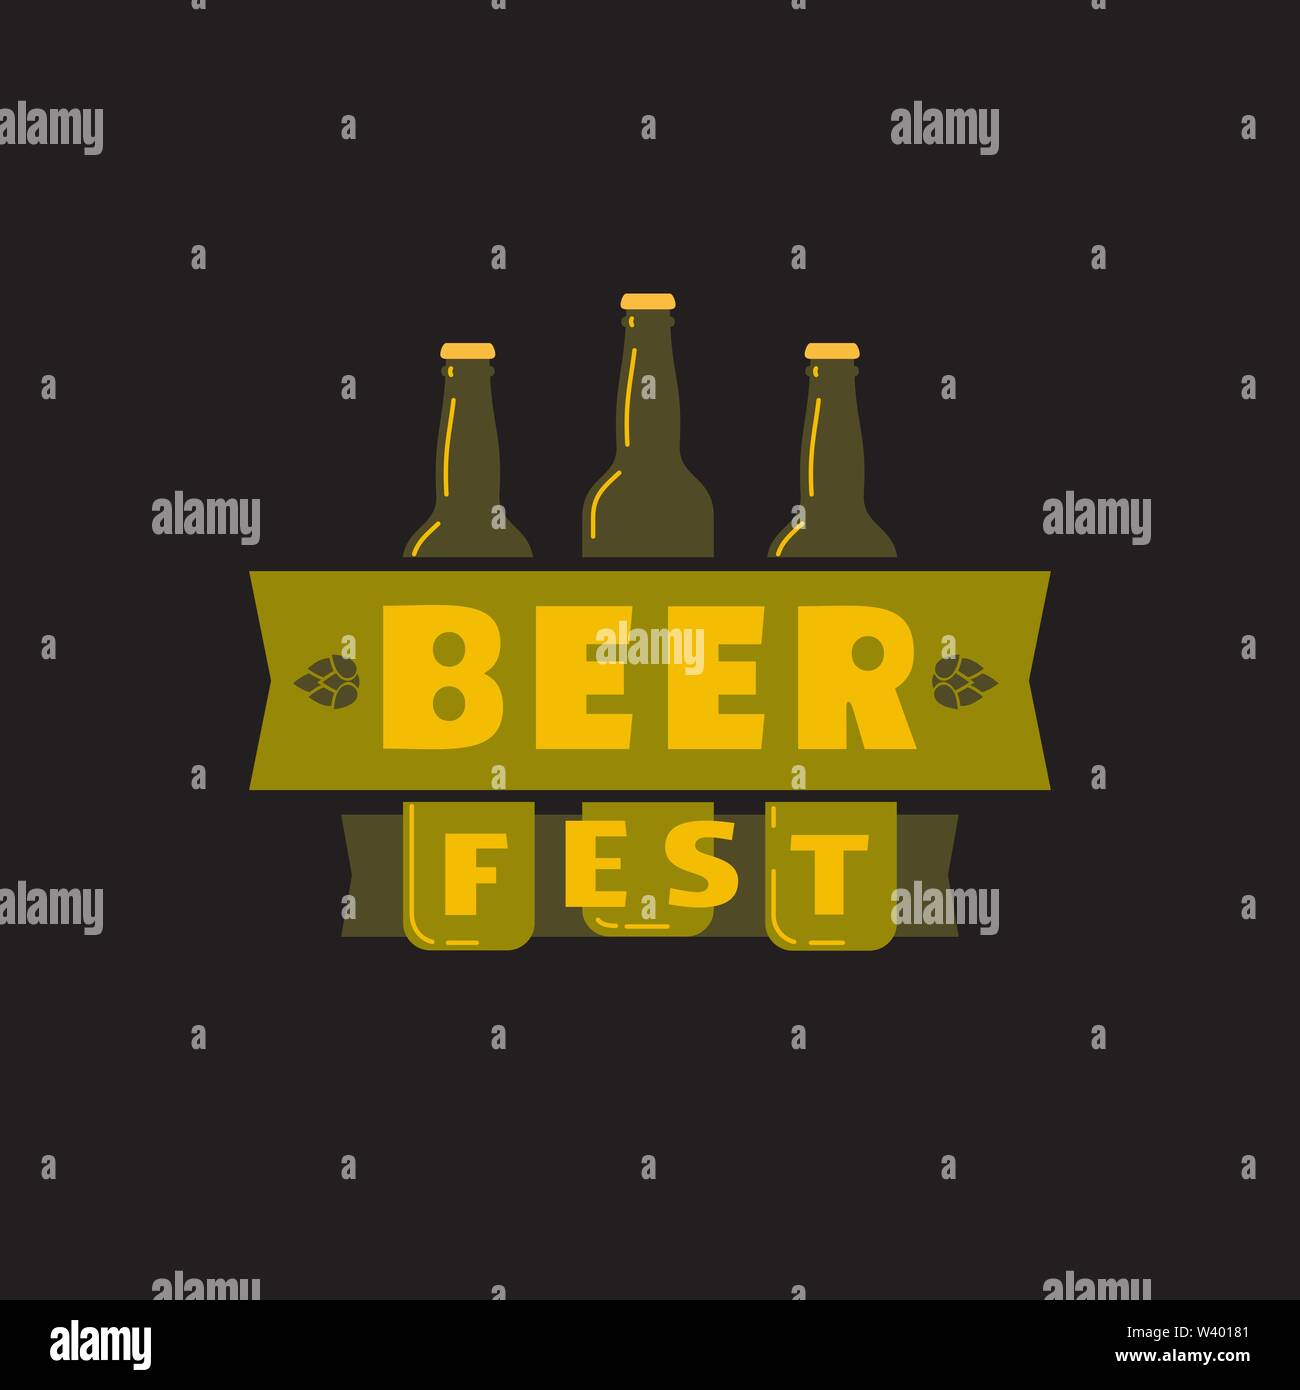 Beer fest hand drawn flat color vector icon - Stock Image